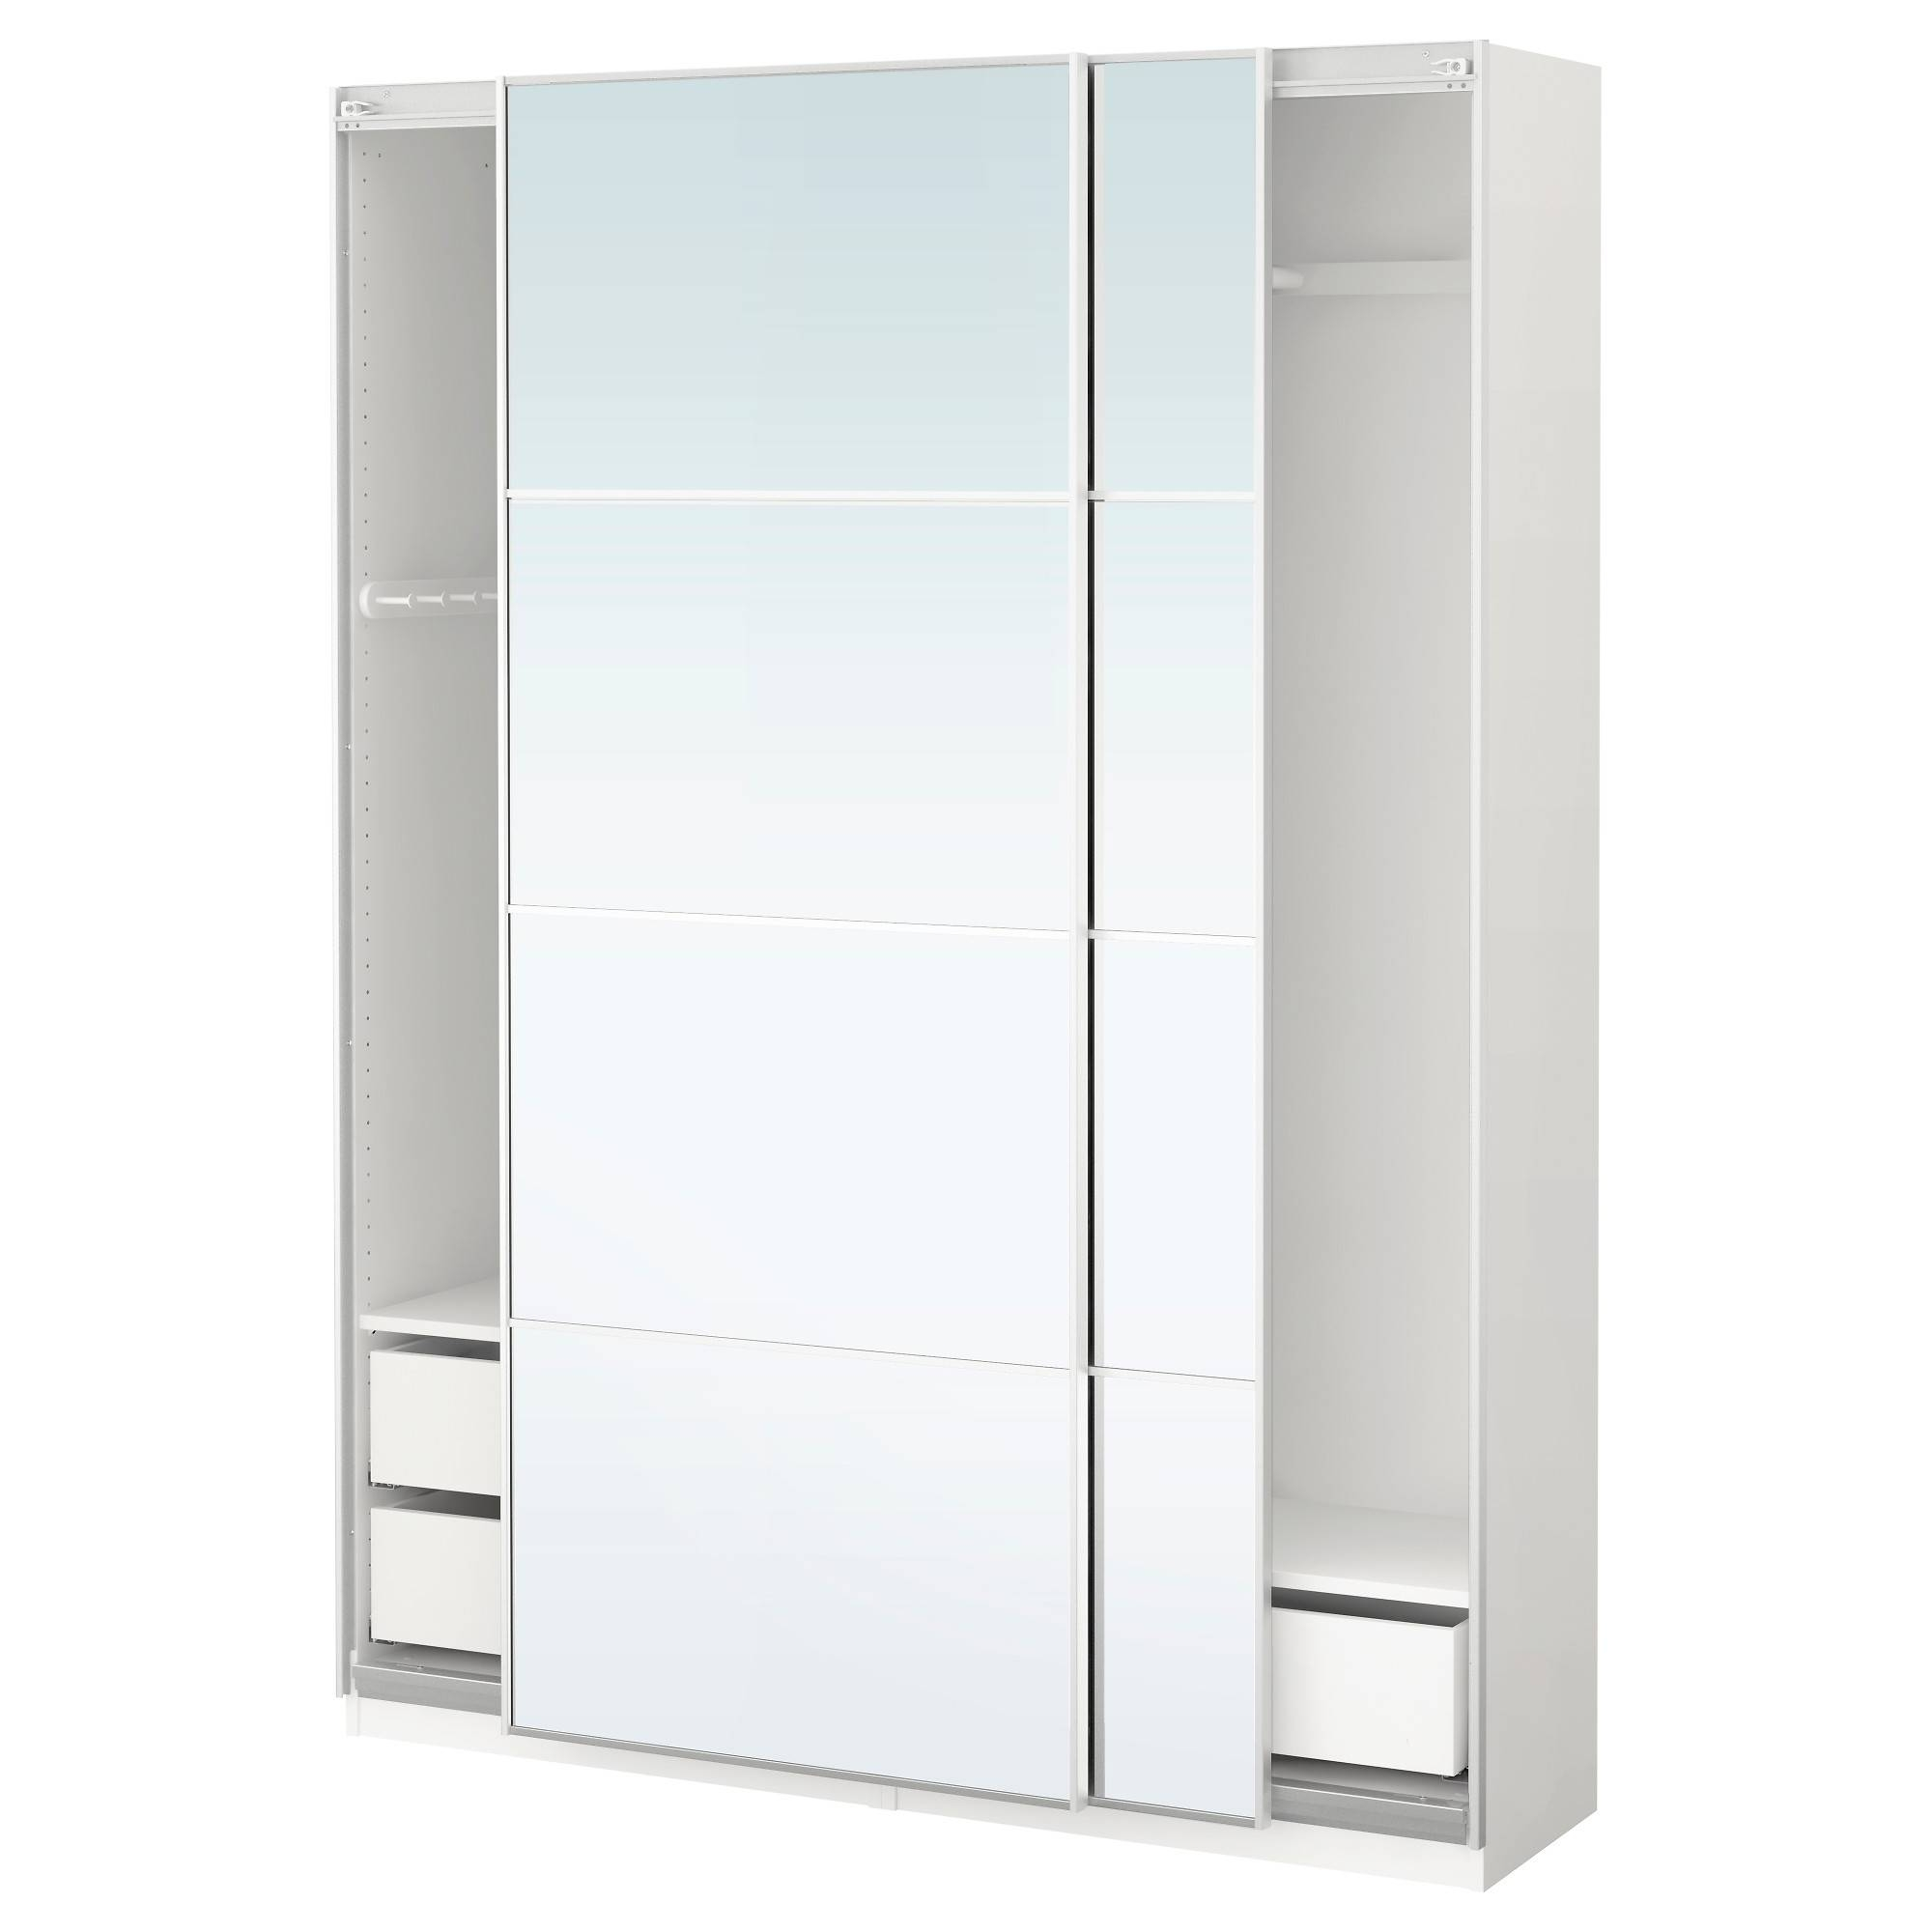 Wardrobes, Armoires & Closets - Ikea pertaining to One Door Mirrored Wardrobes (Image 14 of 15)